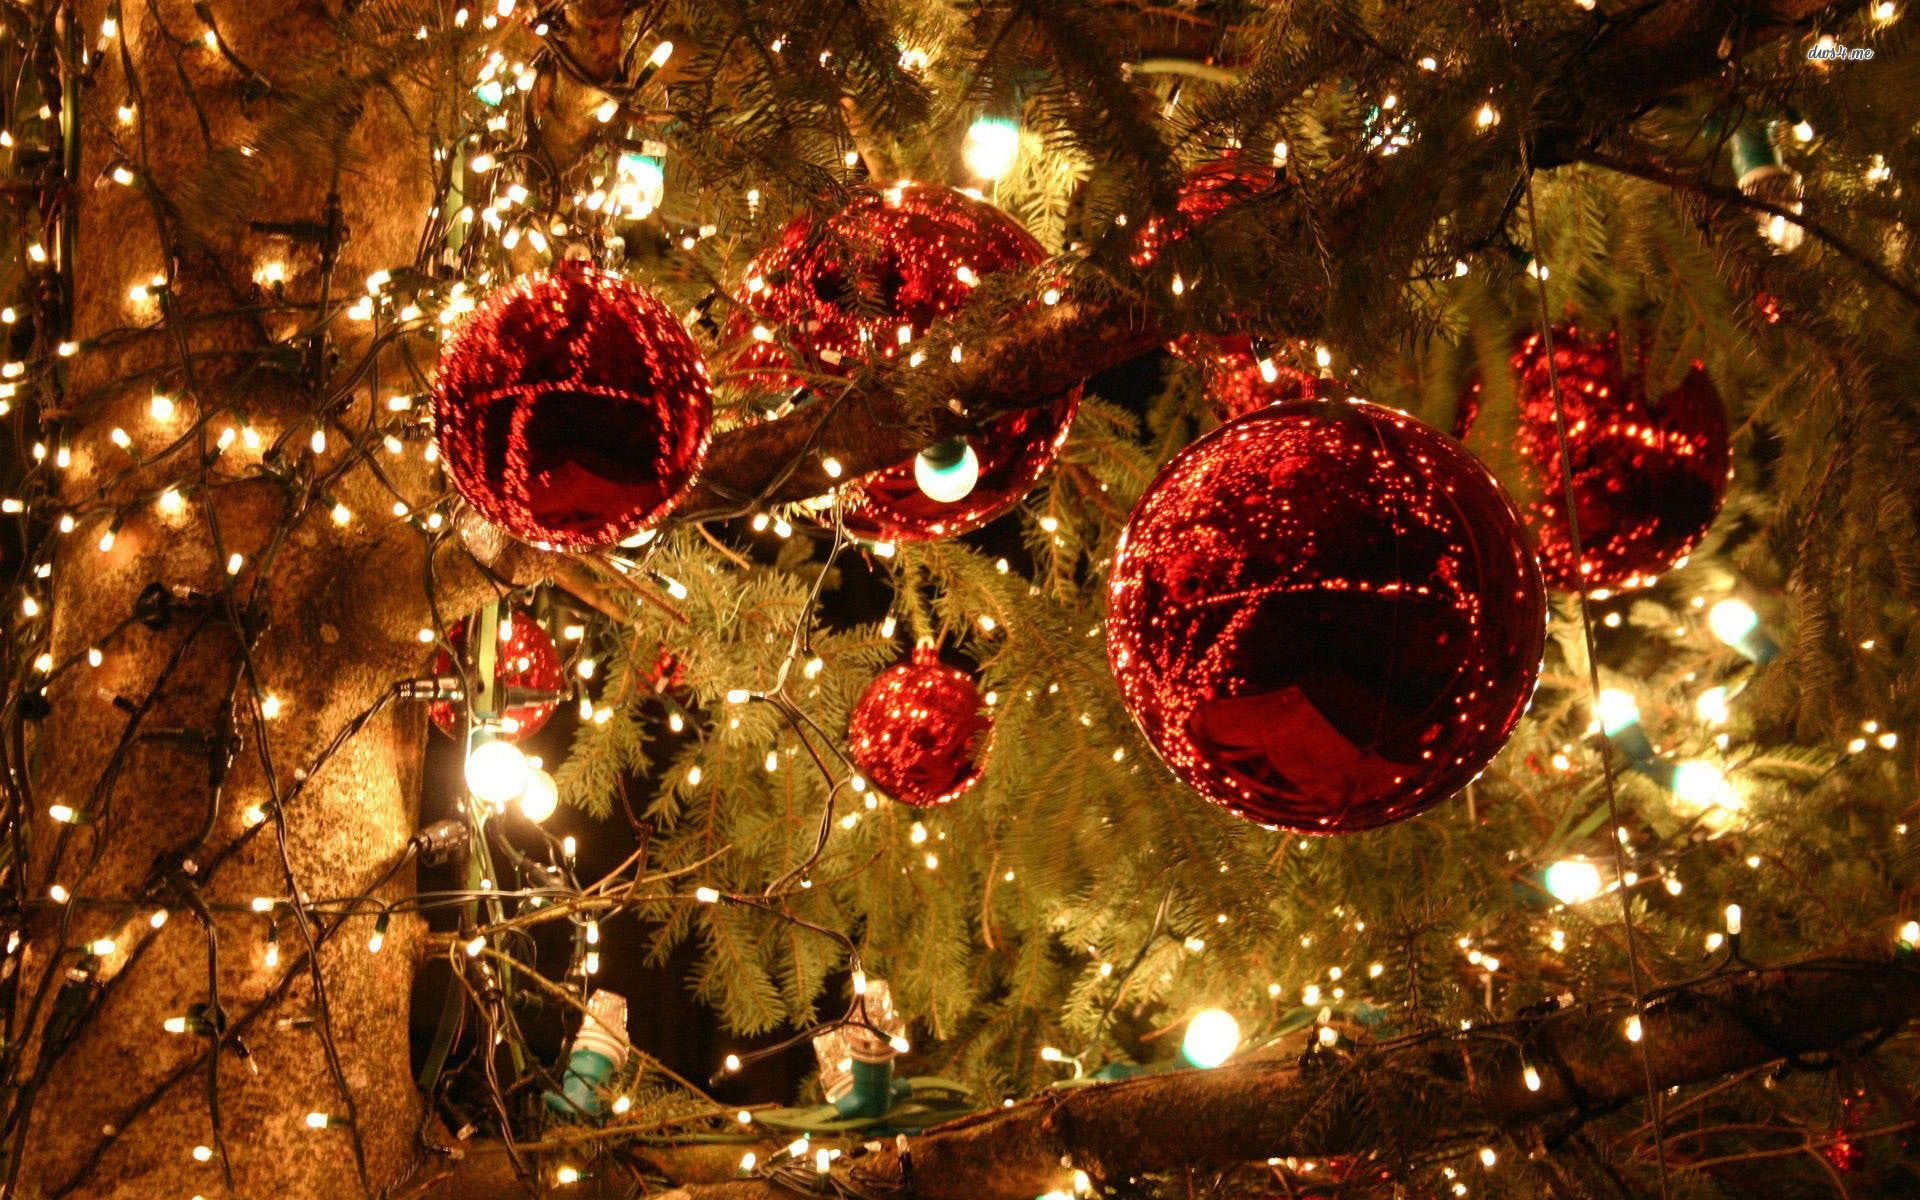 1920x1200 Christmas Ornament Wallpapers HD | PixelsTalk.Net